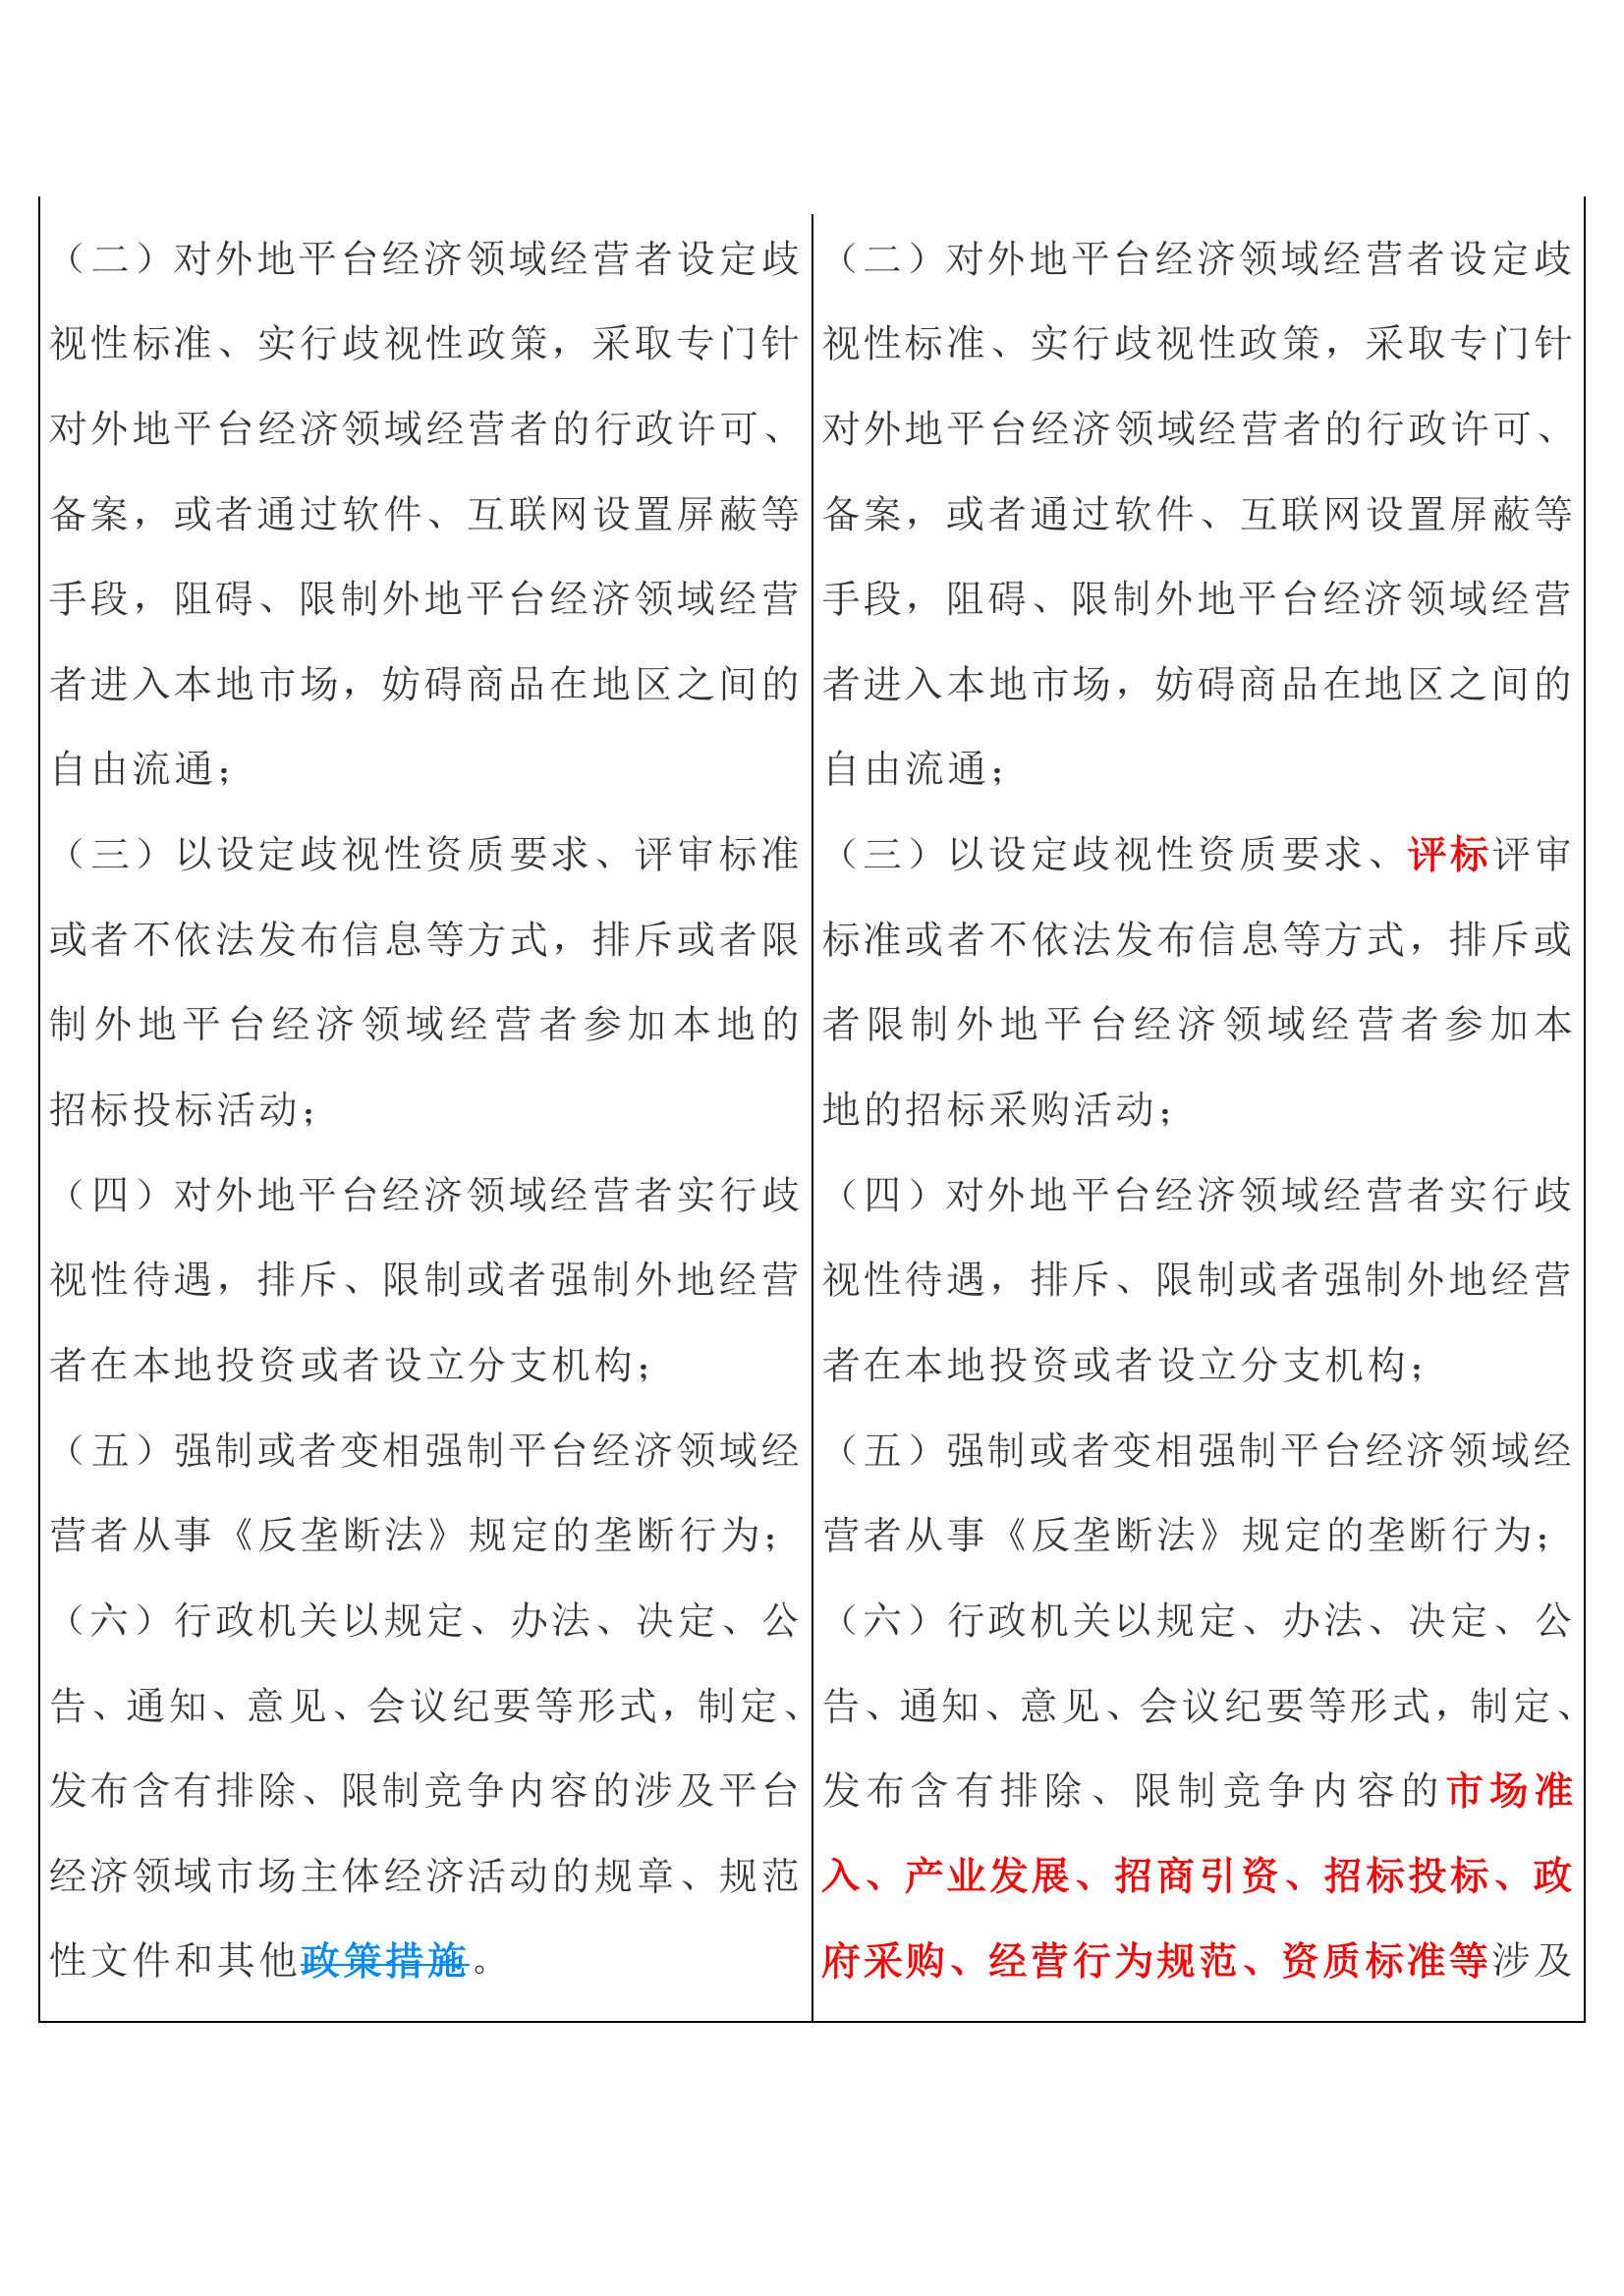 share_pdf_exportpage31(2).png